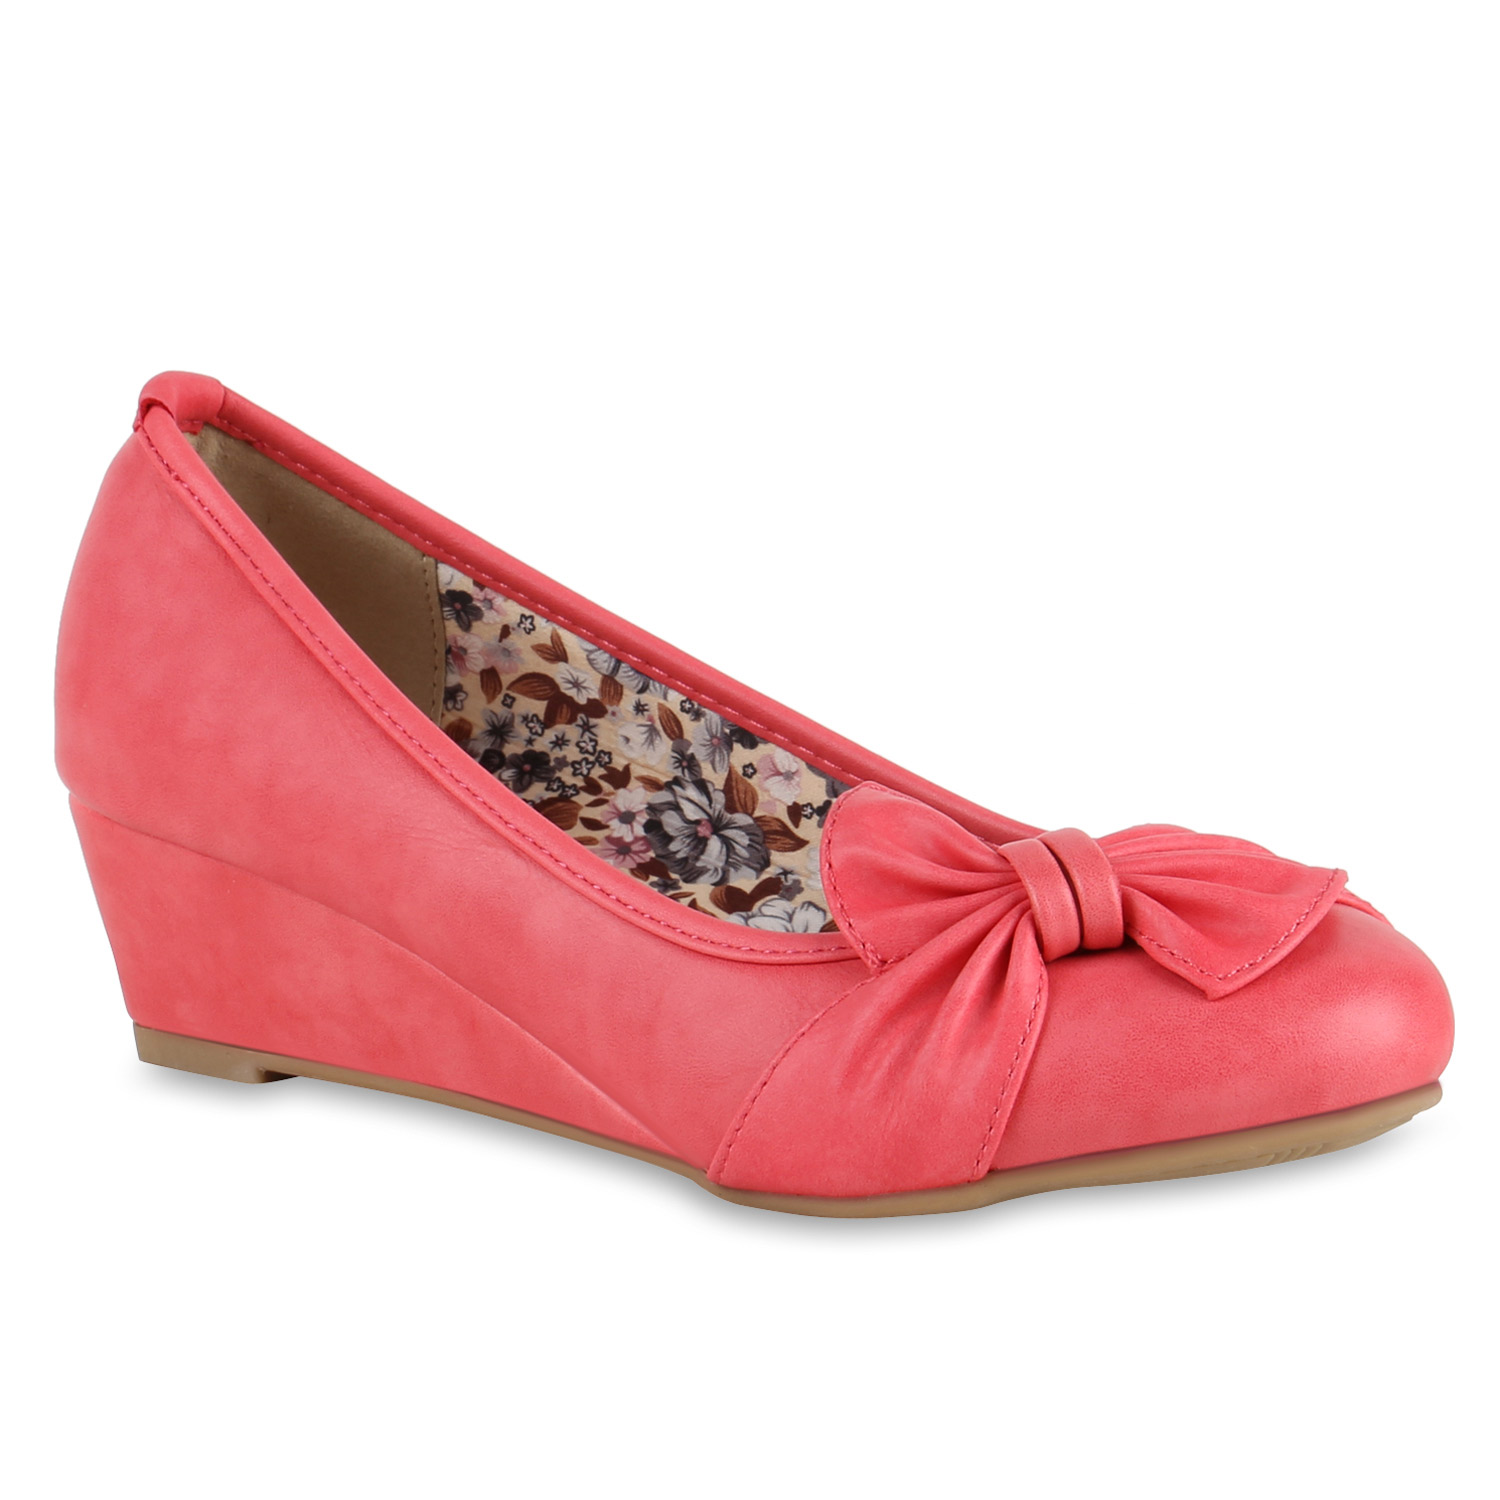 Damen Pumps Keilpumps - Coral